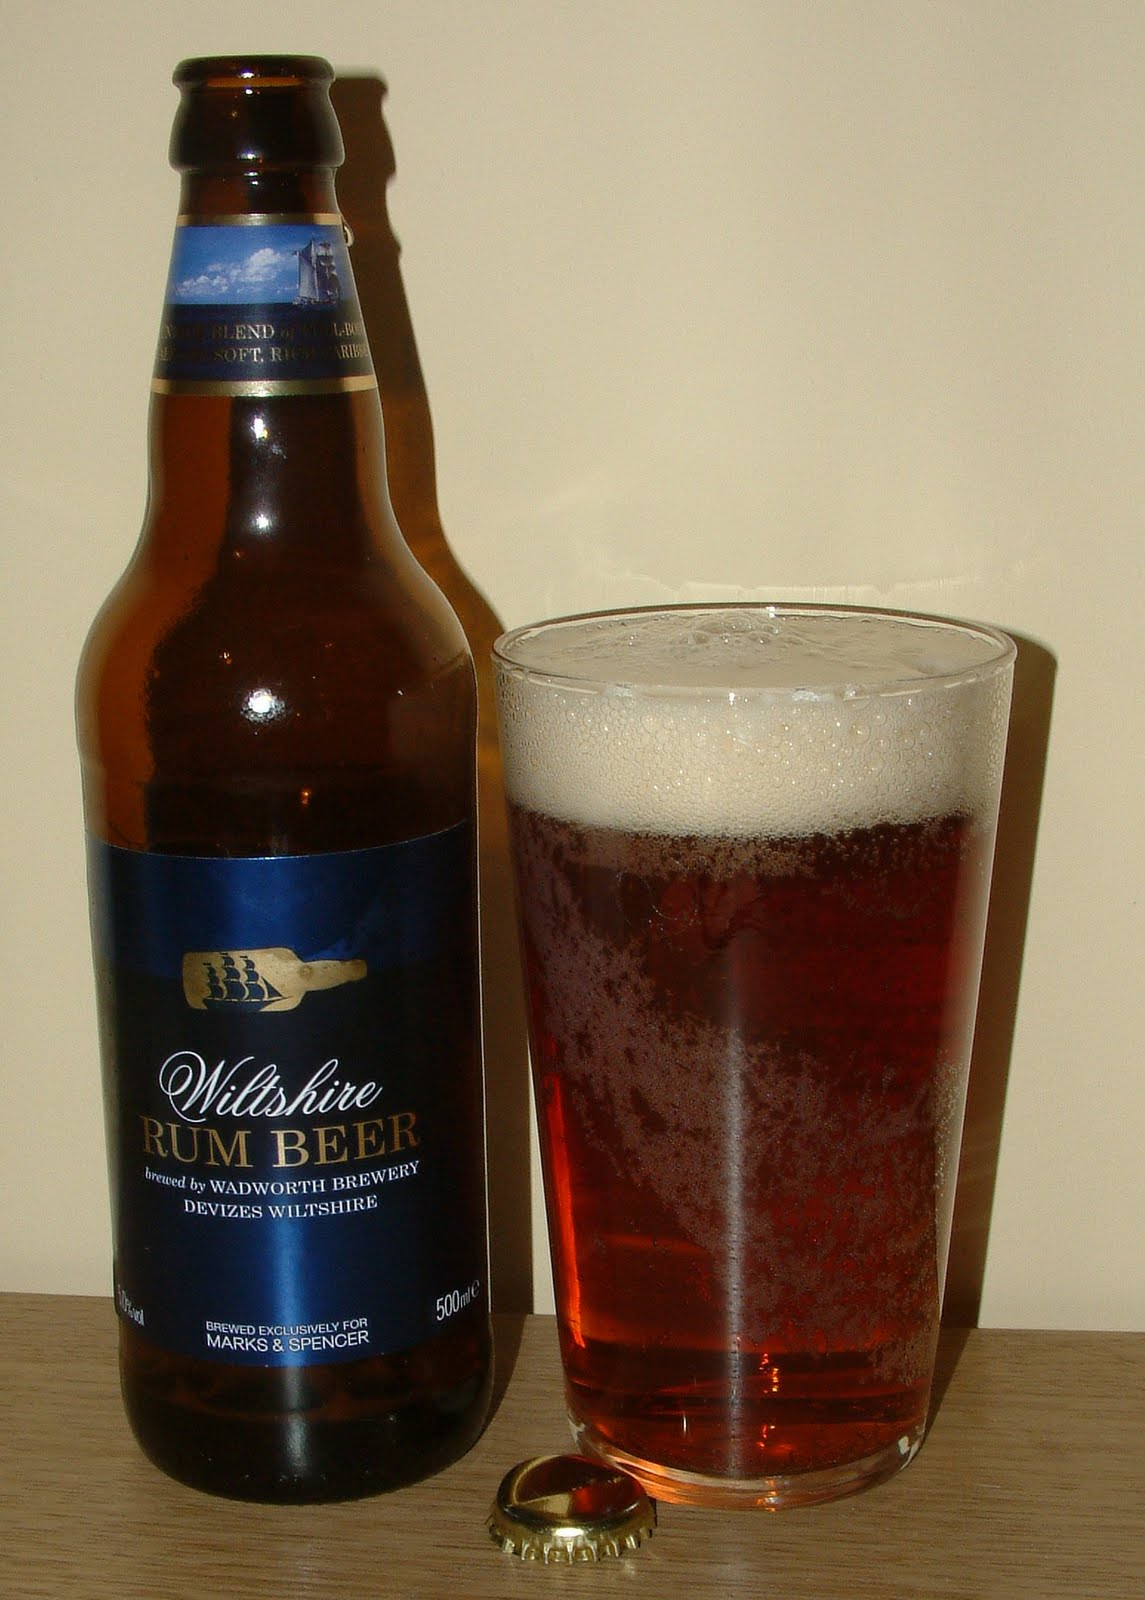 Marks Spencer Wiltshire Rum Beer Is A Dark Shade Of Amber Pouring Fizzily With Just A Subtle Aroma I Was Relieved Not To Have My Senses Aulted By